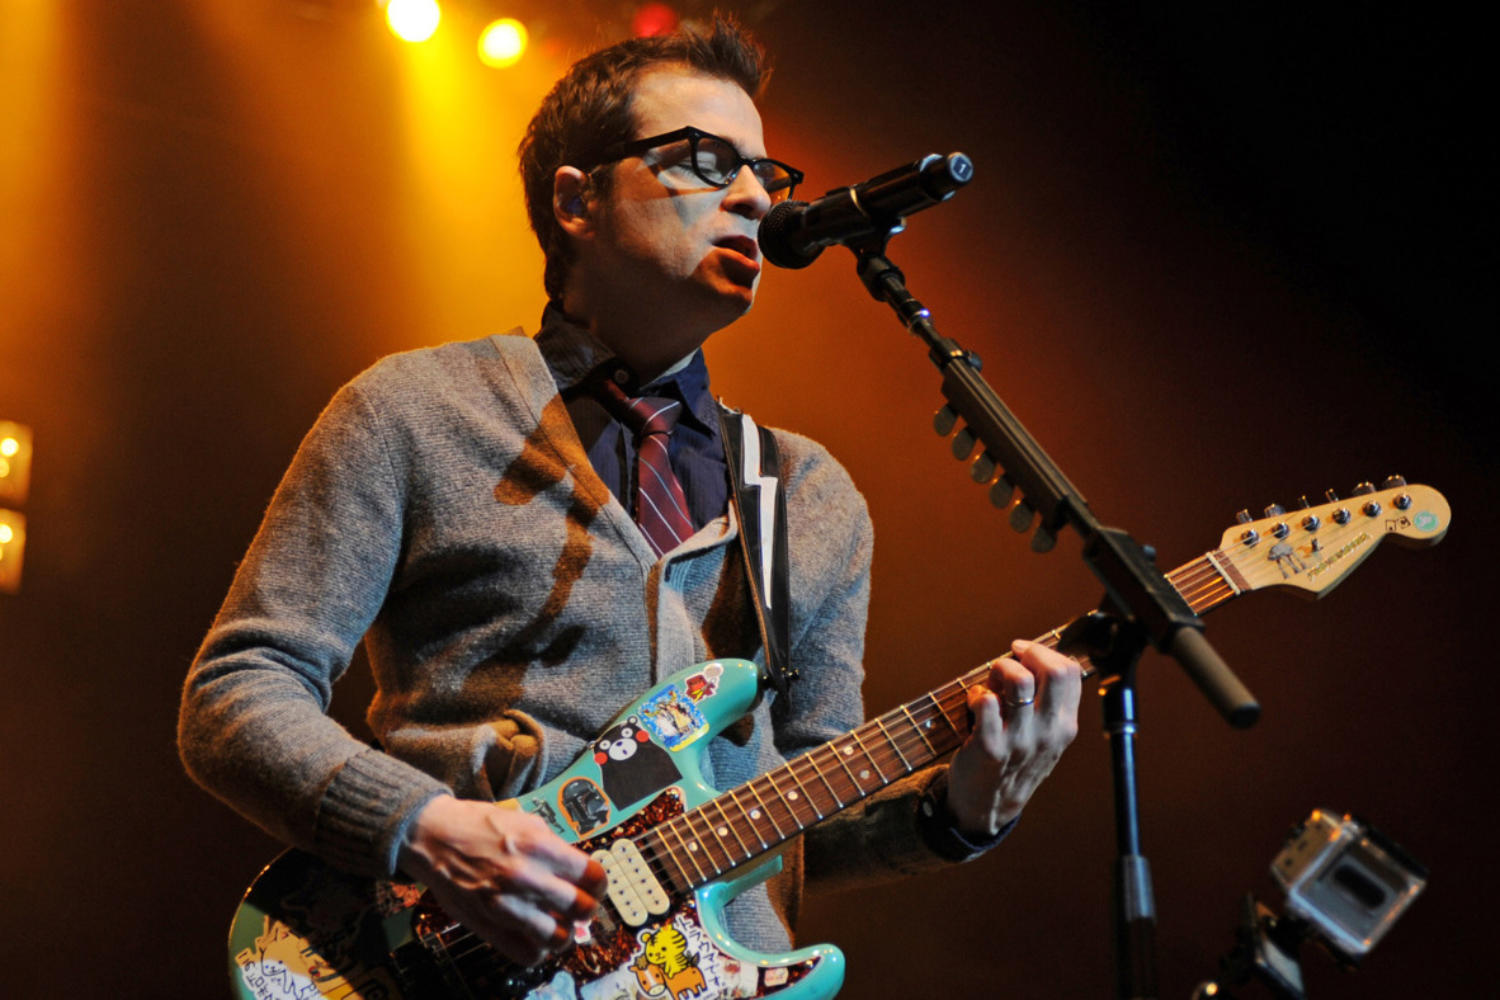 Surprise! Weezer have released an album of covers